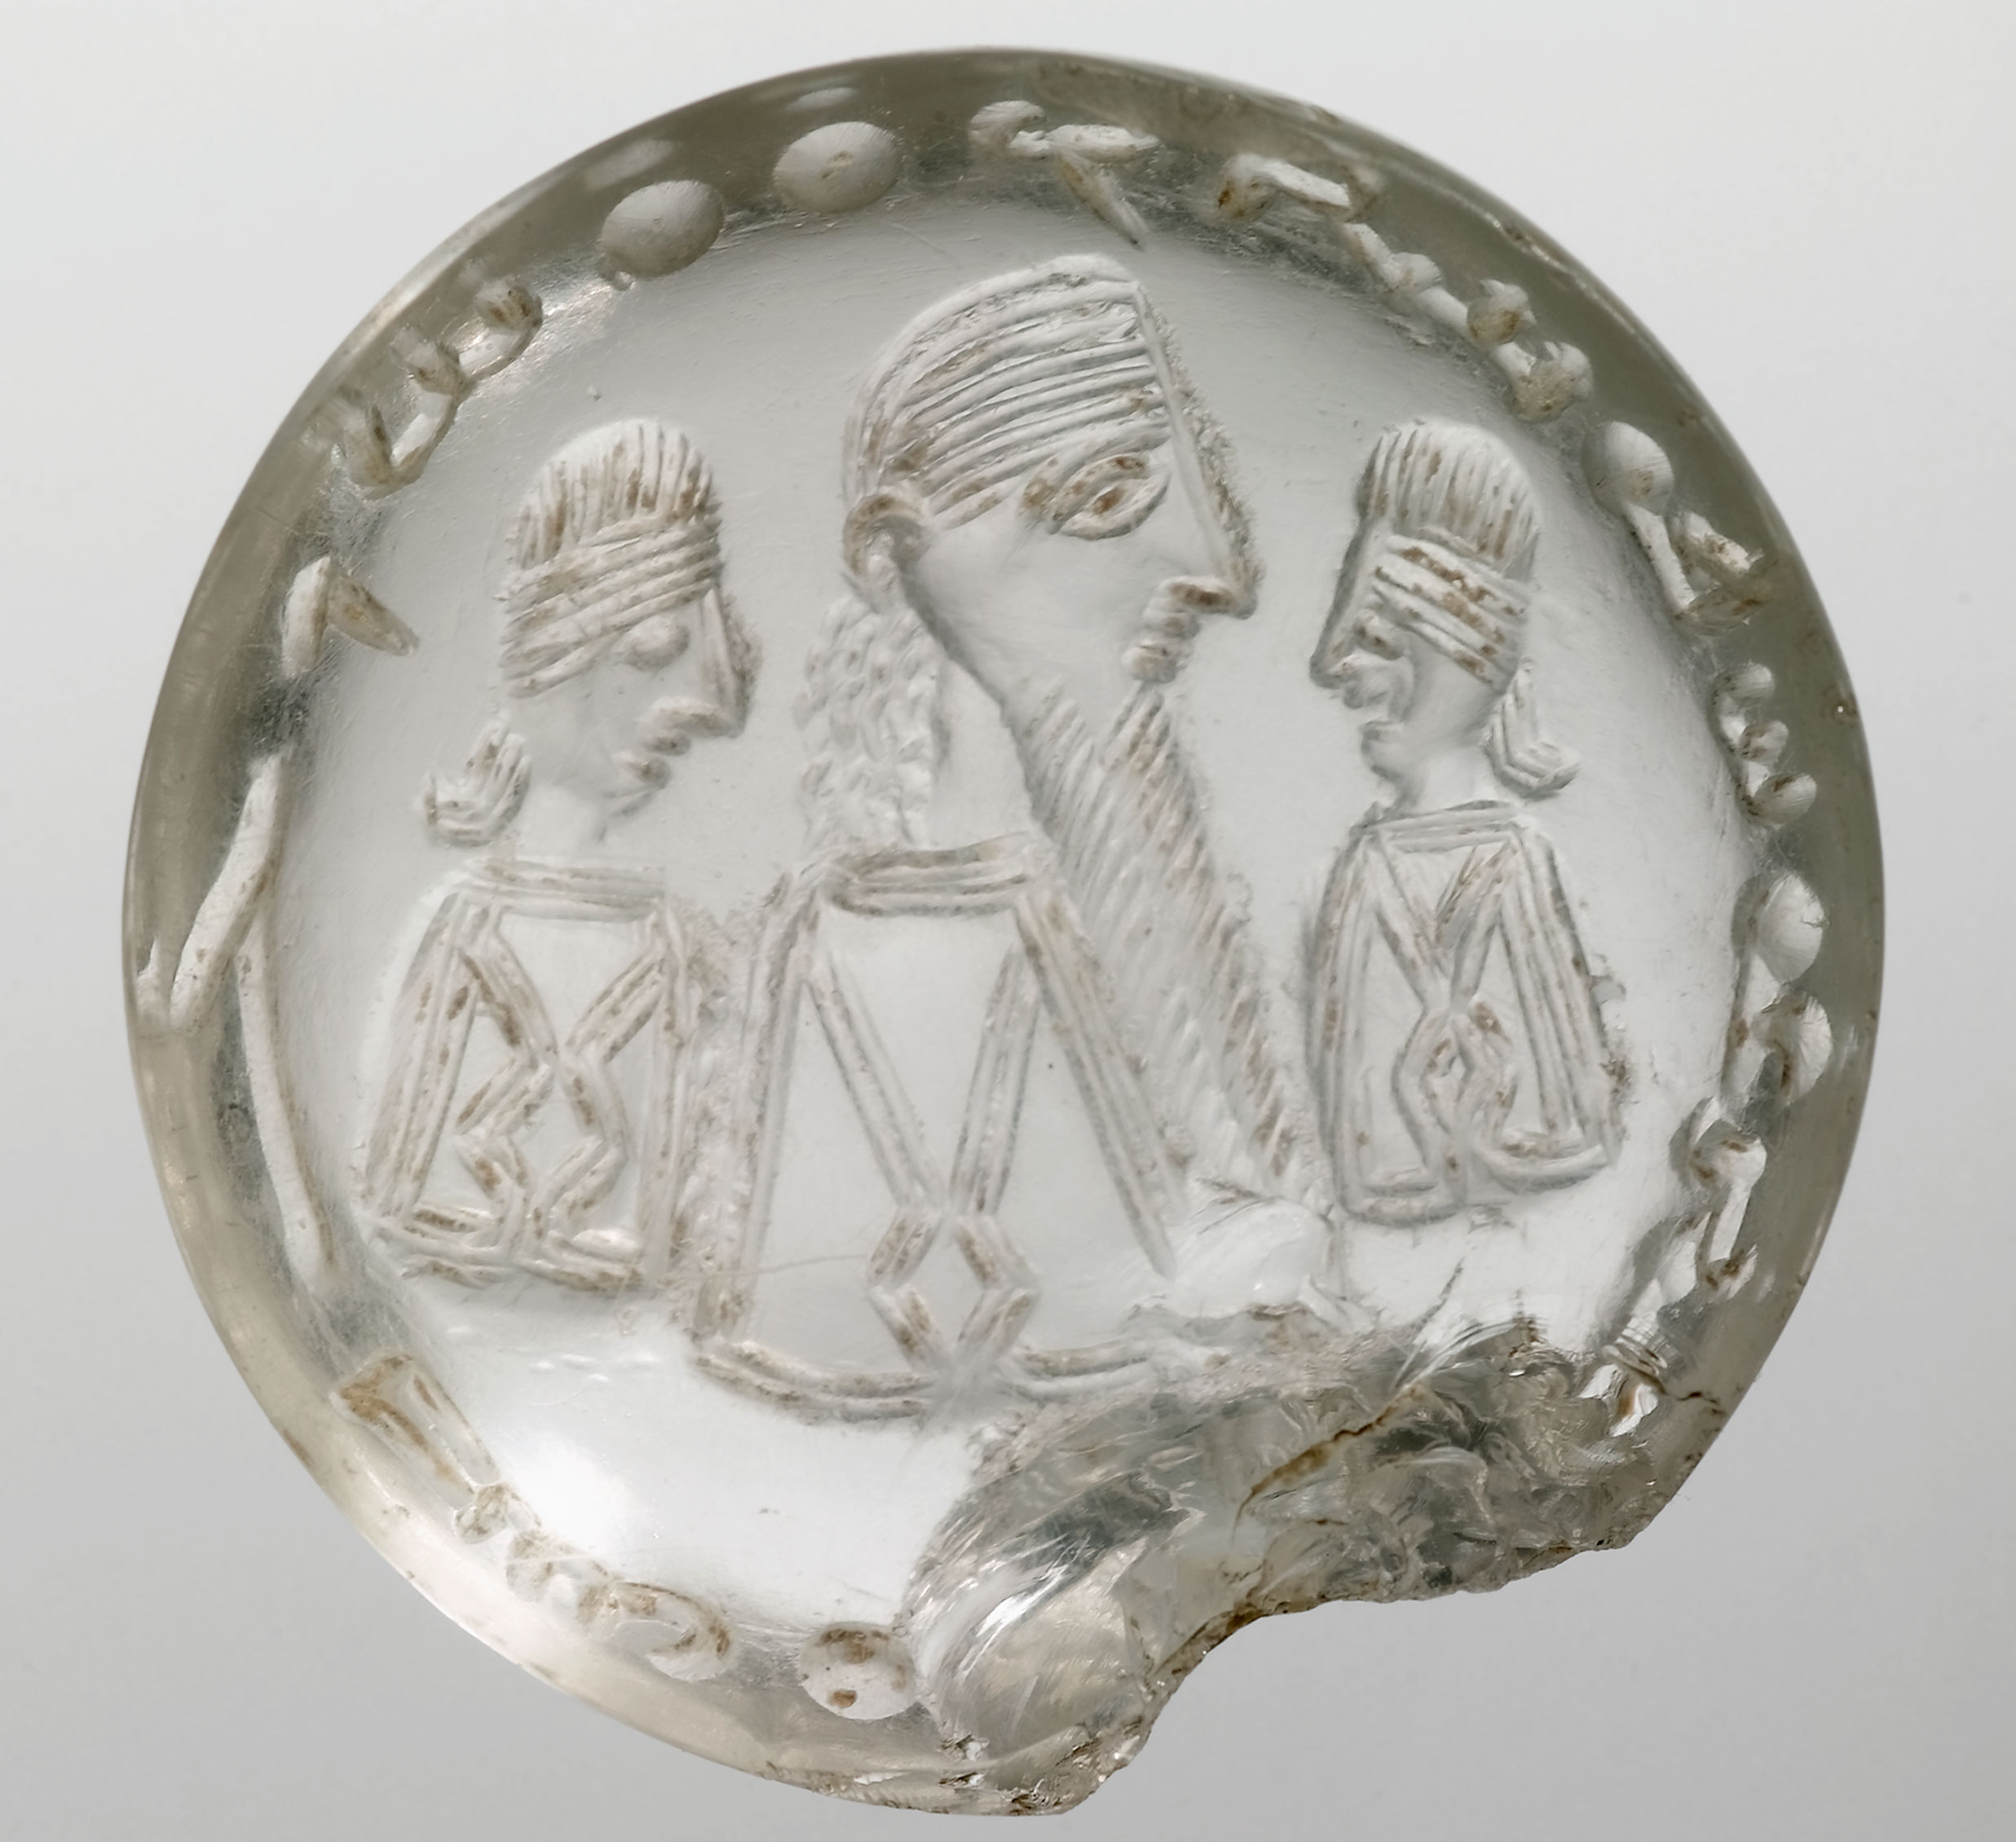 """'The Crystal Seal of Mani' (possibly 3rd cent. CE). The Syriac text reads: """"Mani, the Apostle of Jesus Christ"""". Bibliothèque nationale de France"""